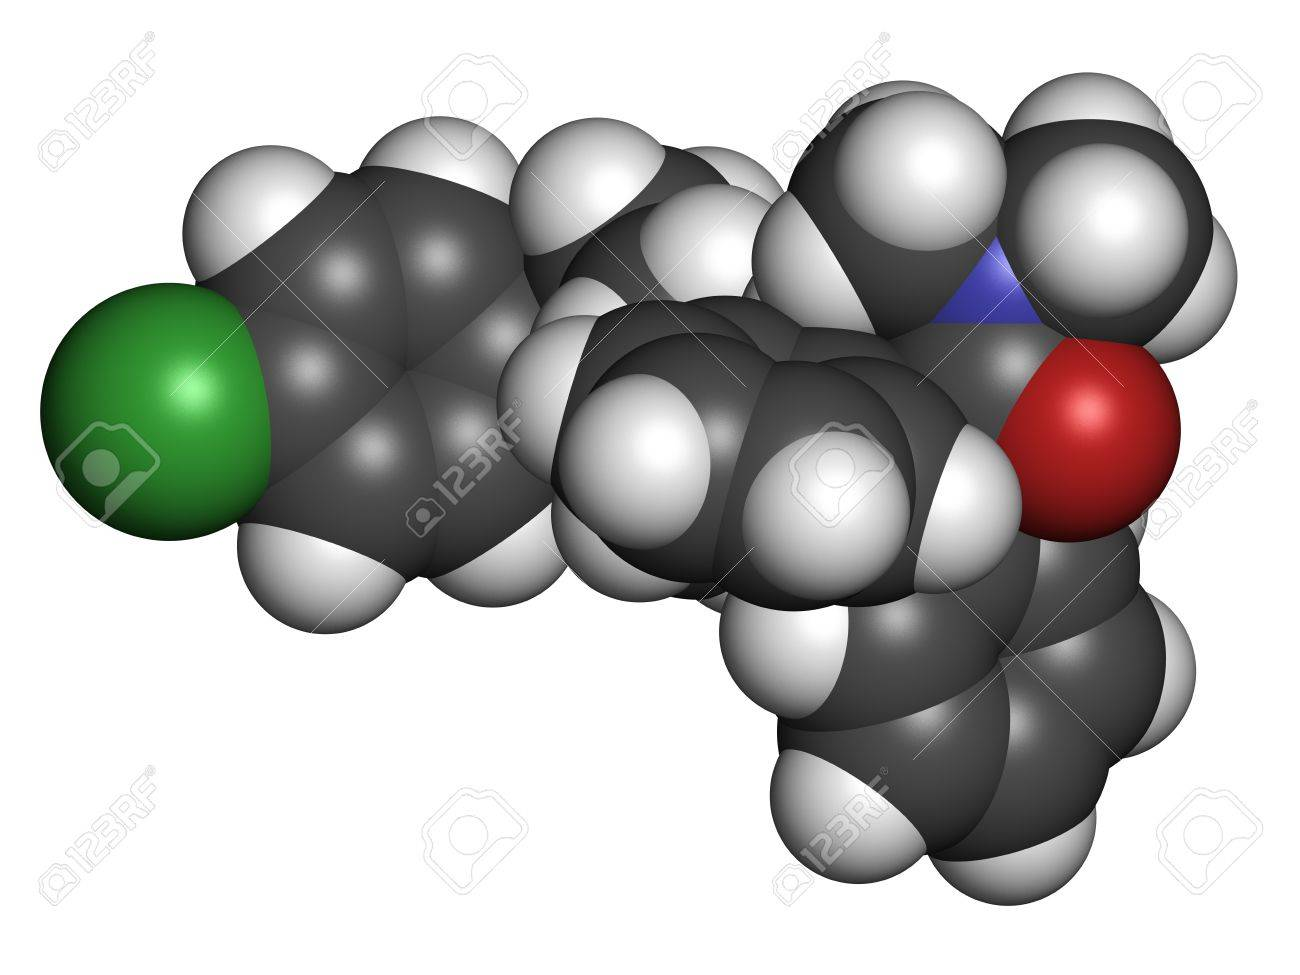 Loperamide diarrhea drug, chemical structure. Atoms are represented as spheres with conventional color coding: hydrogen (white), carbon (grey), oxygen (red), nitrogen (blue), chlorine (green) Stock Photo - 21198730